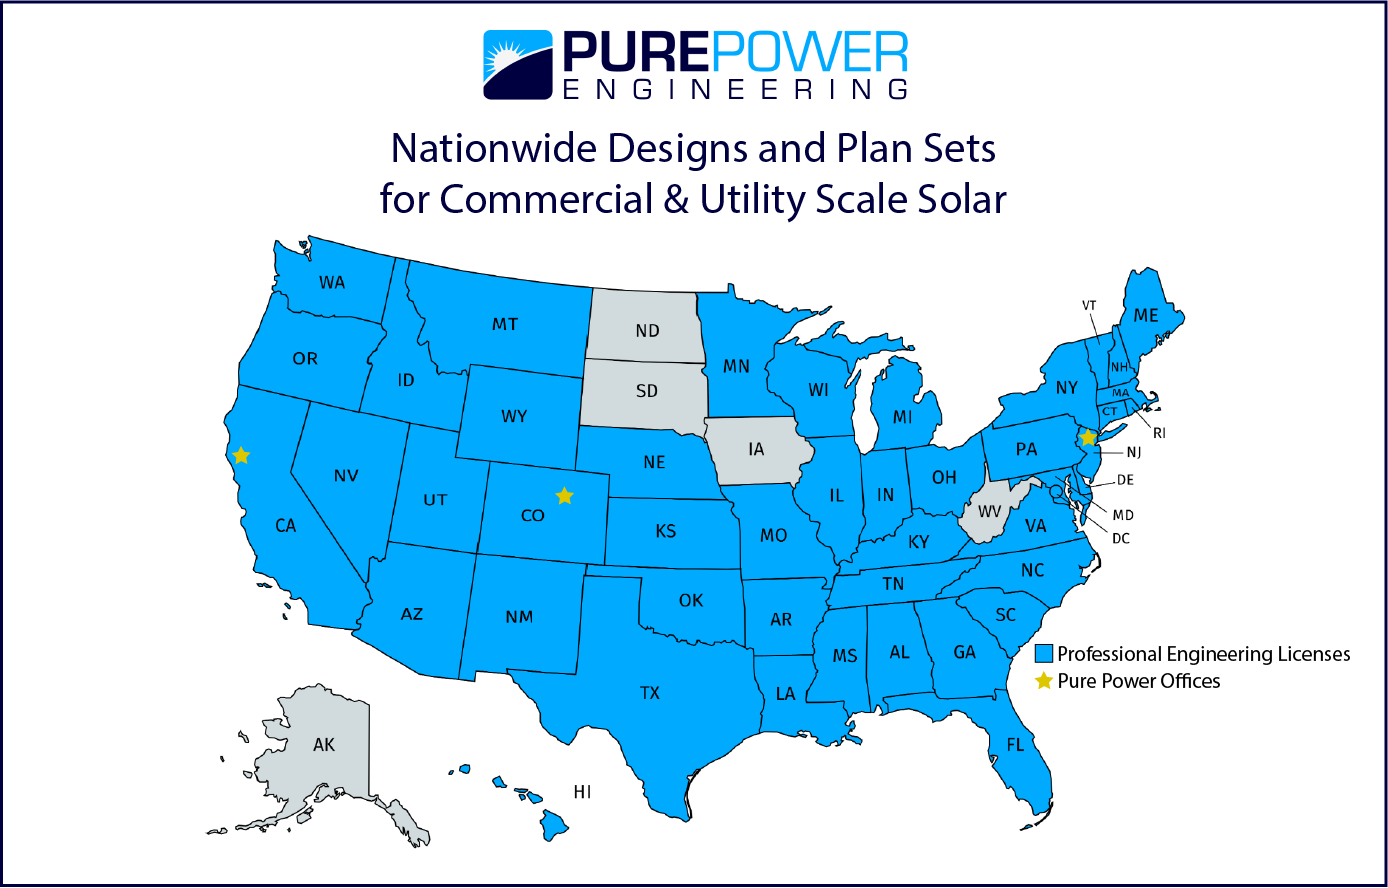 Nationwide Designs and Plan Sets for Commercial & Utility Scale Solar